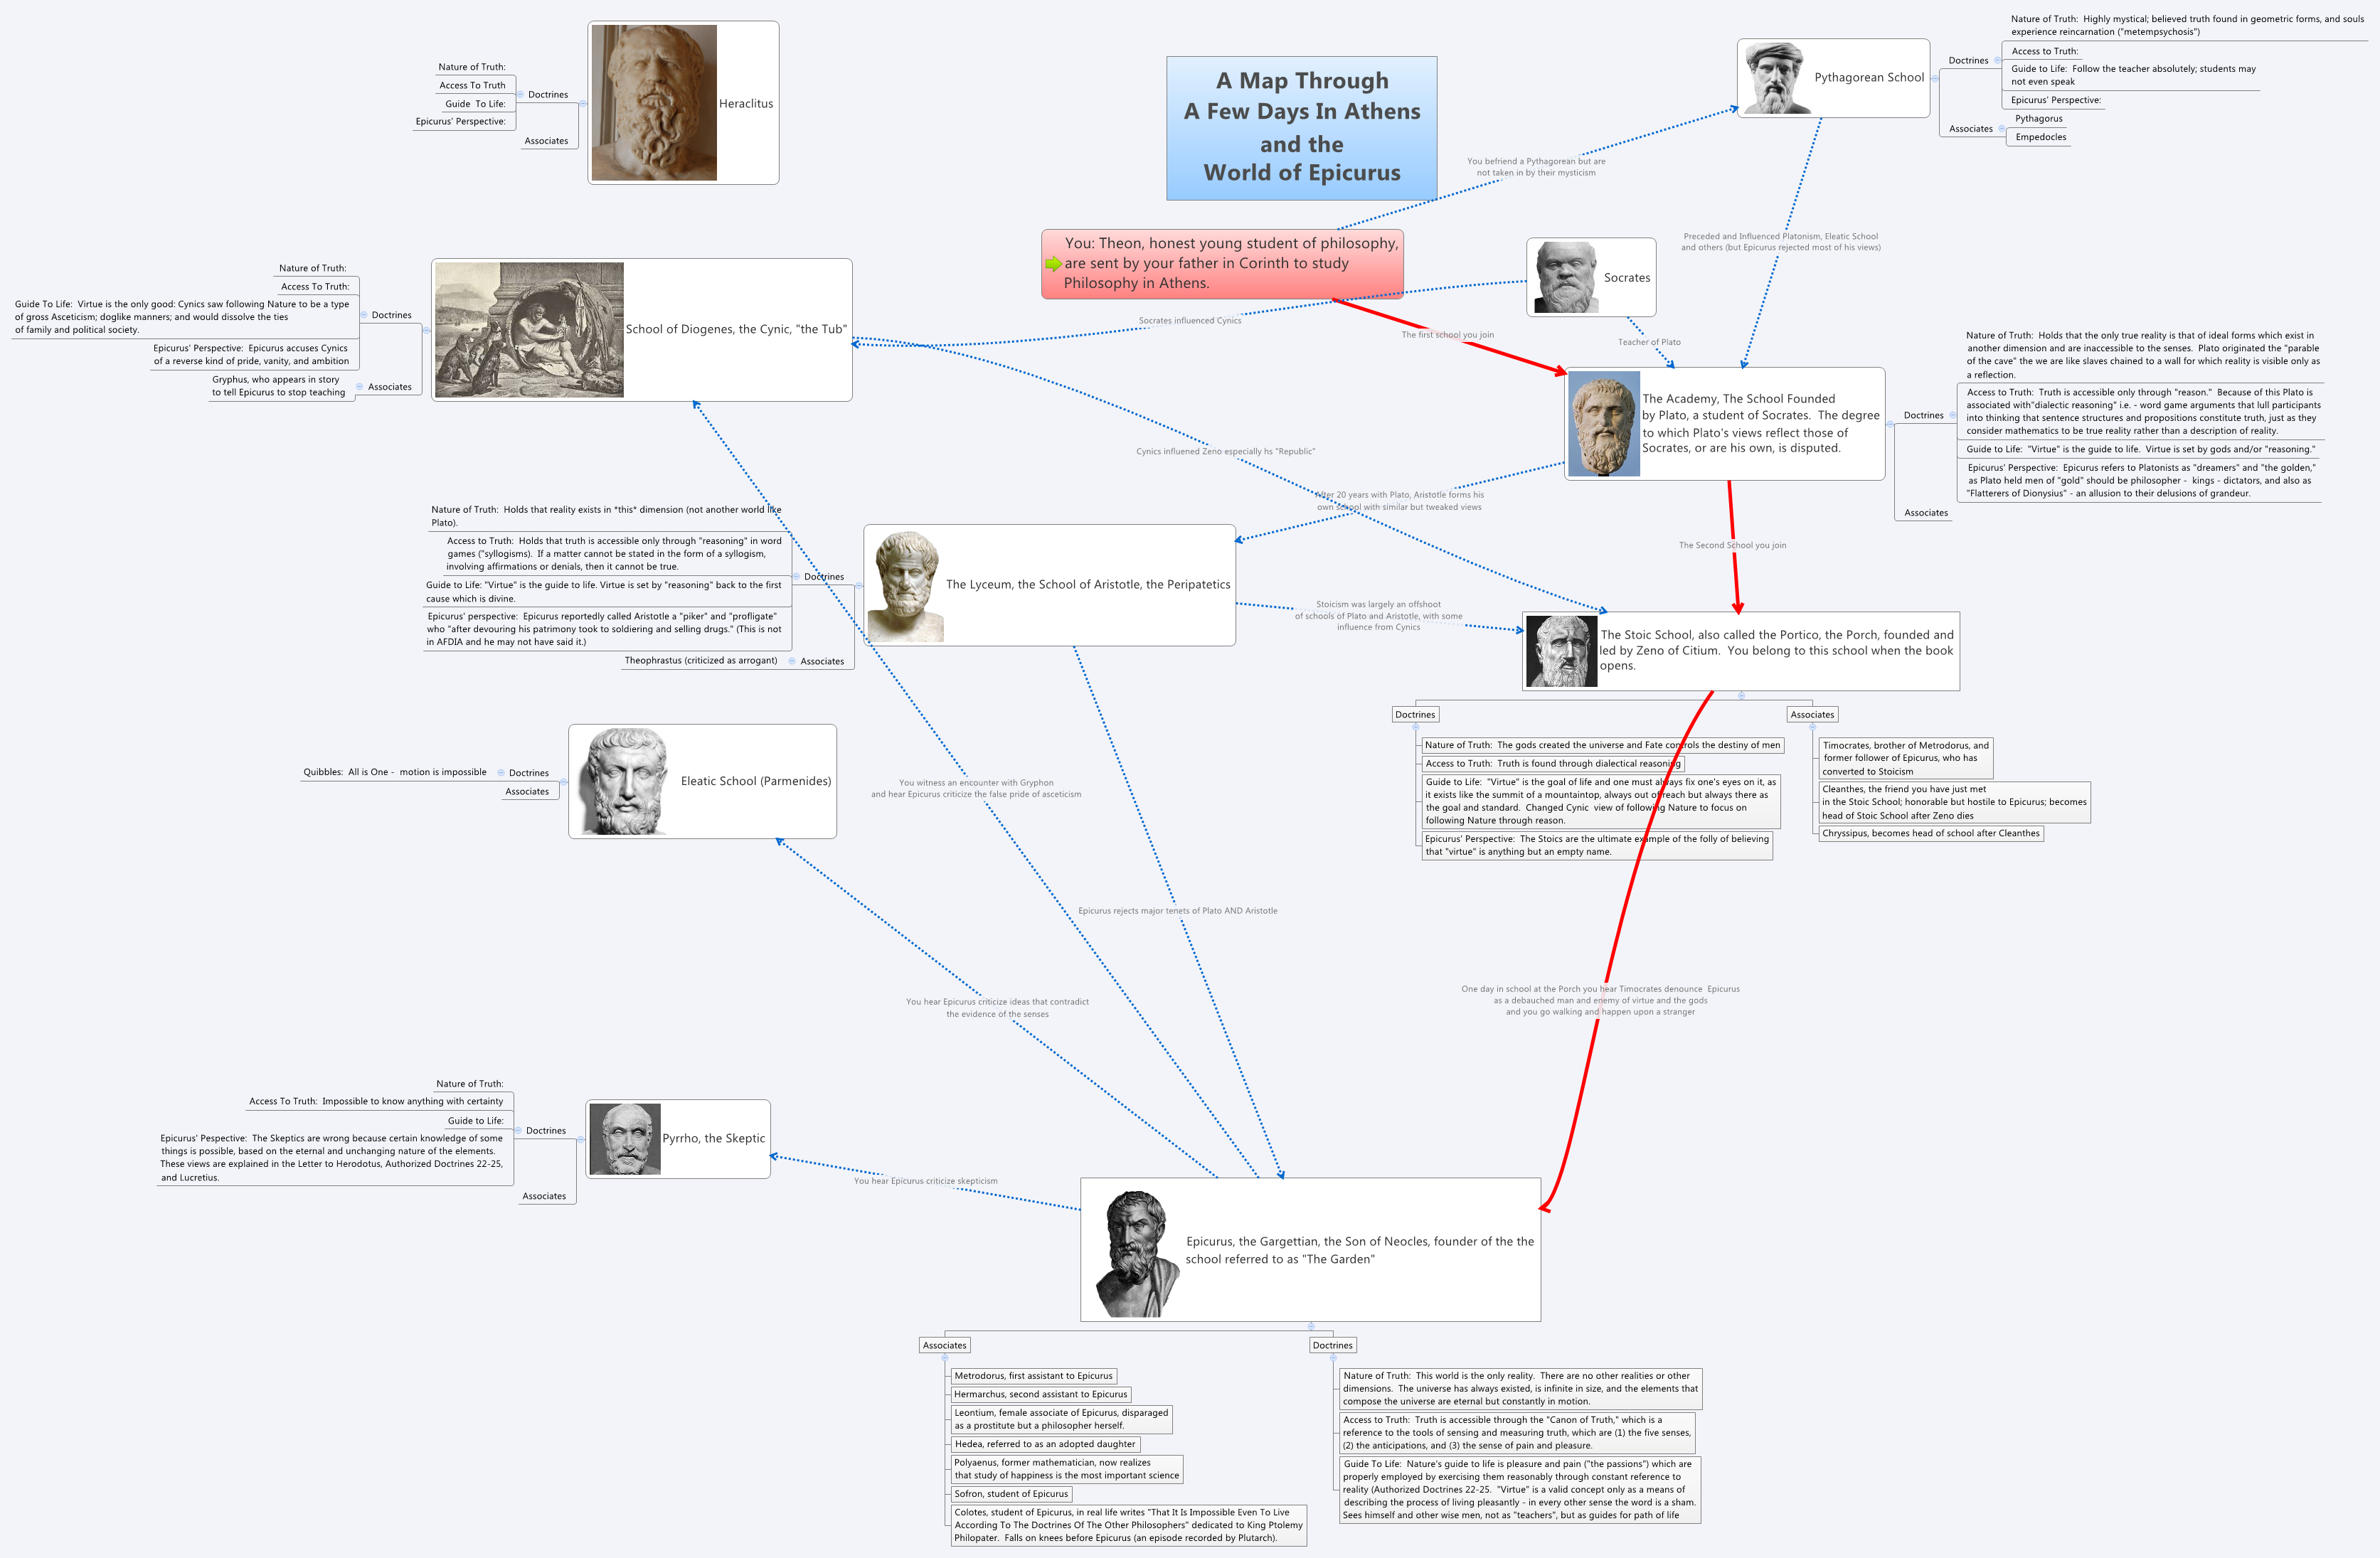 A Map Through          A Few Days In Athens         and the         World of Epicurus